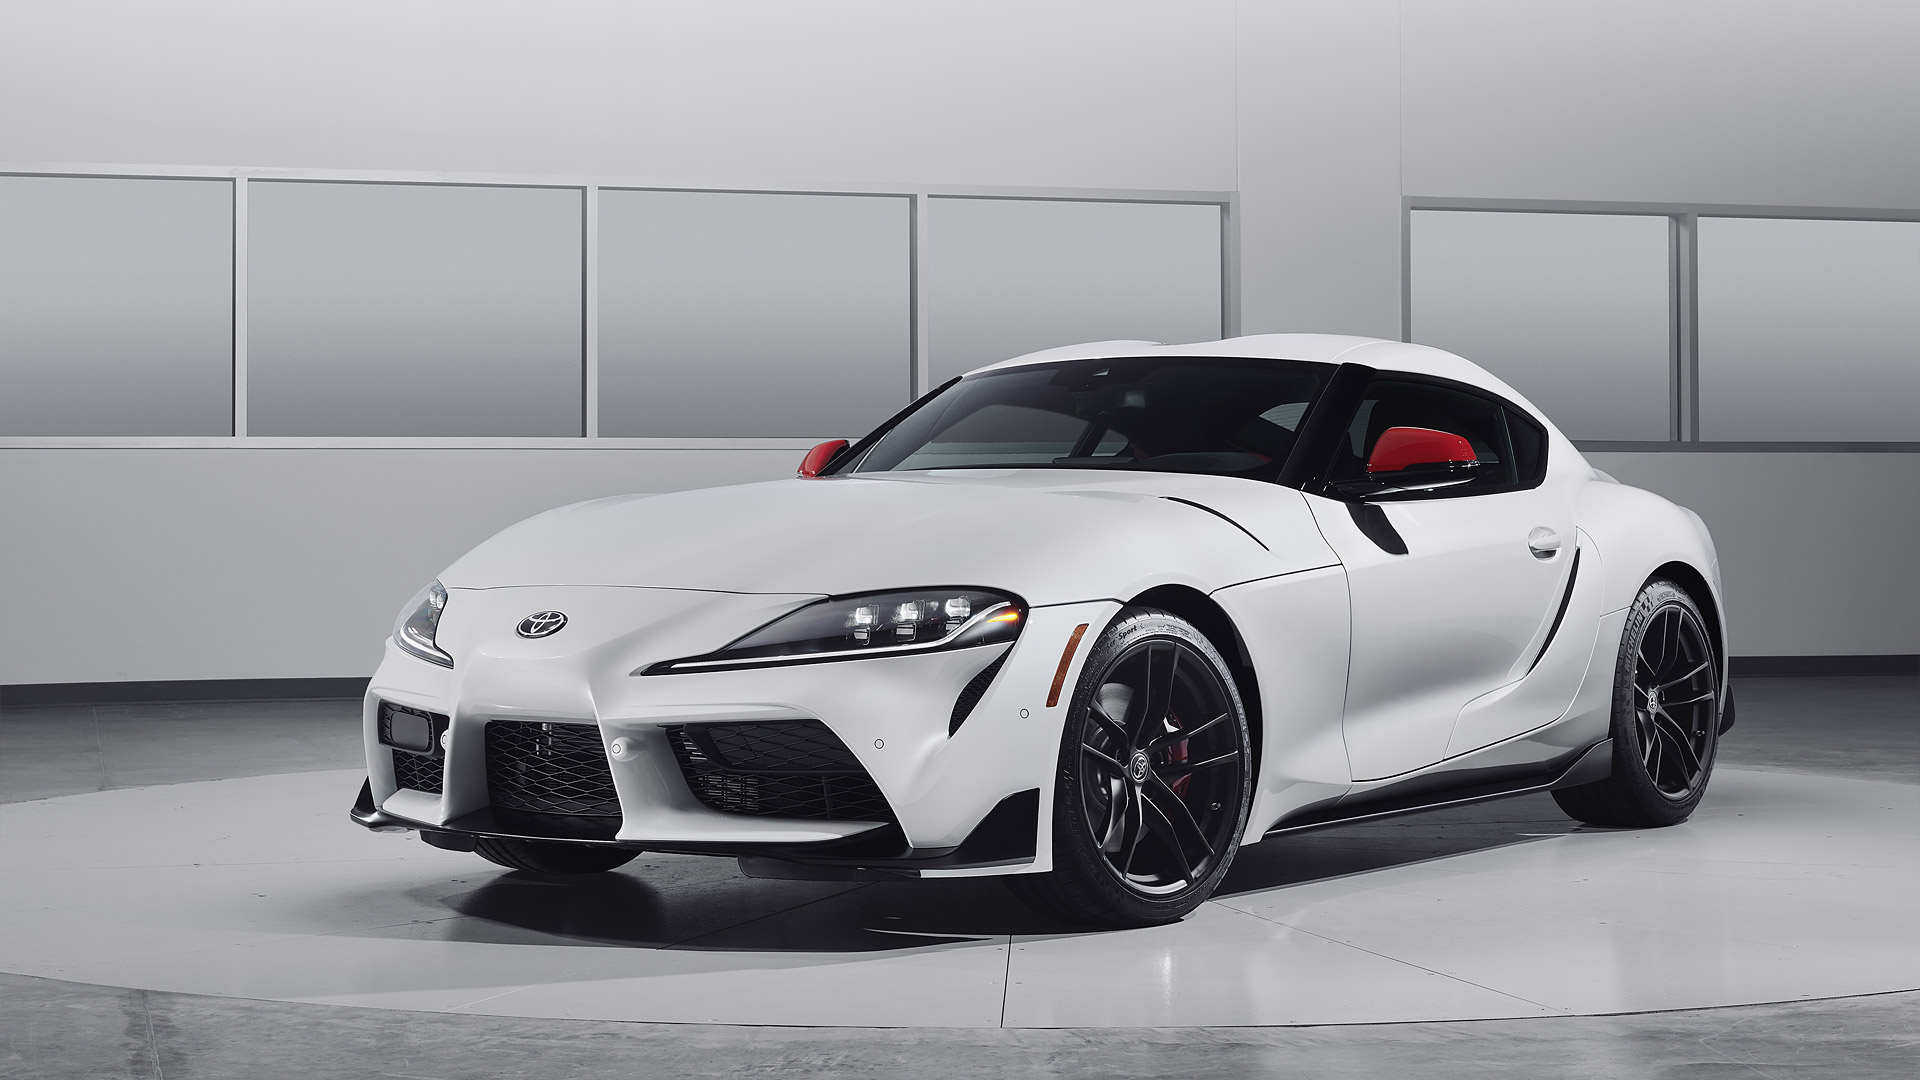 Toyota Supra 2019 , HD Wallpaper & Backgrounds